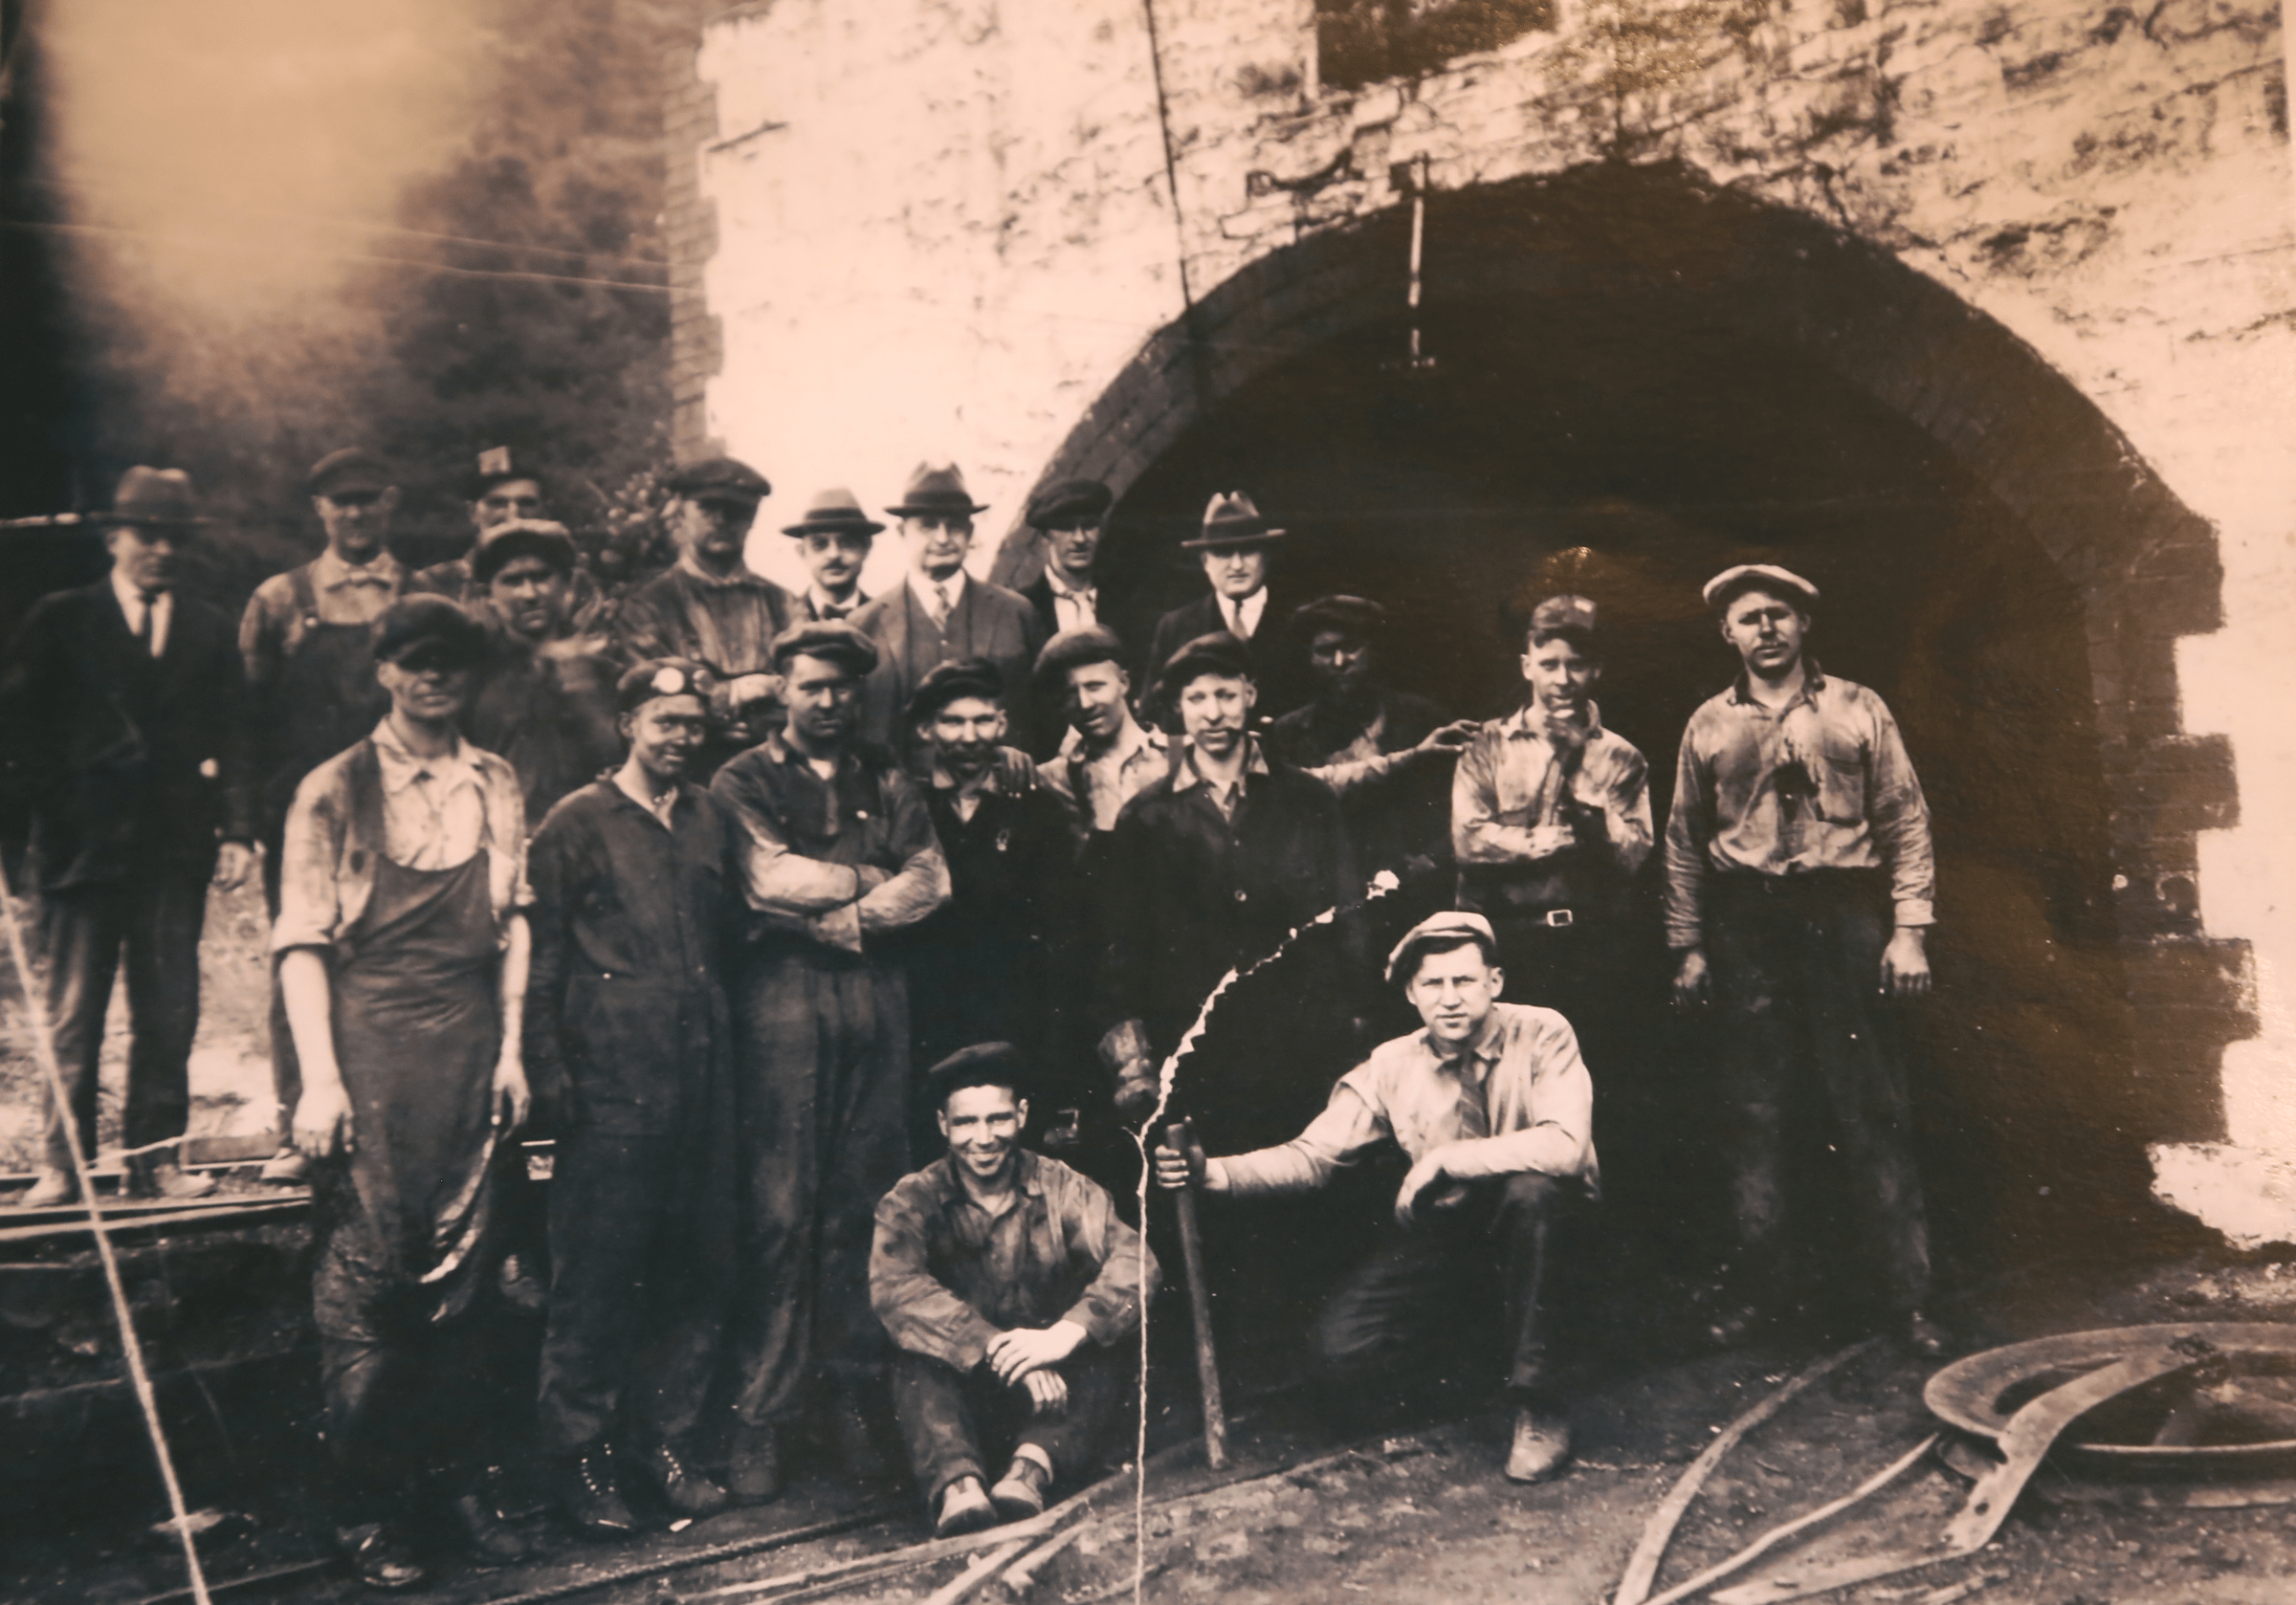 Miners at the mouth of Banning #2 Coal Mine in Whitsett, PA circa 1920. (Photo courtesy of The Whitsett Historical Society)